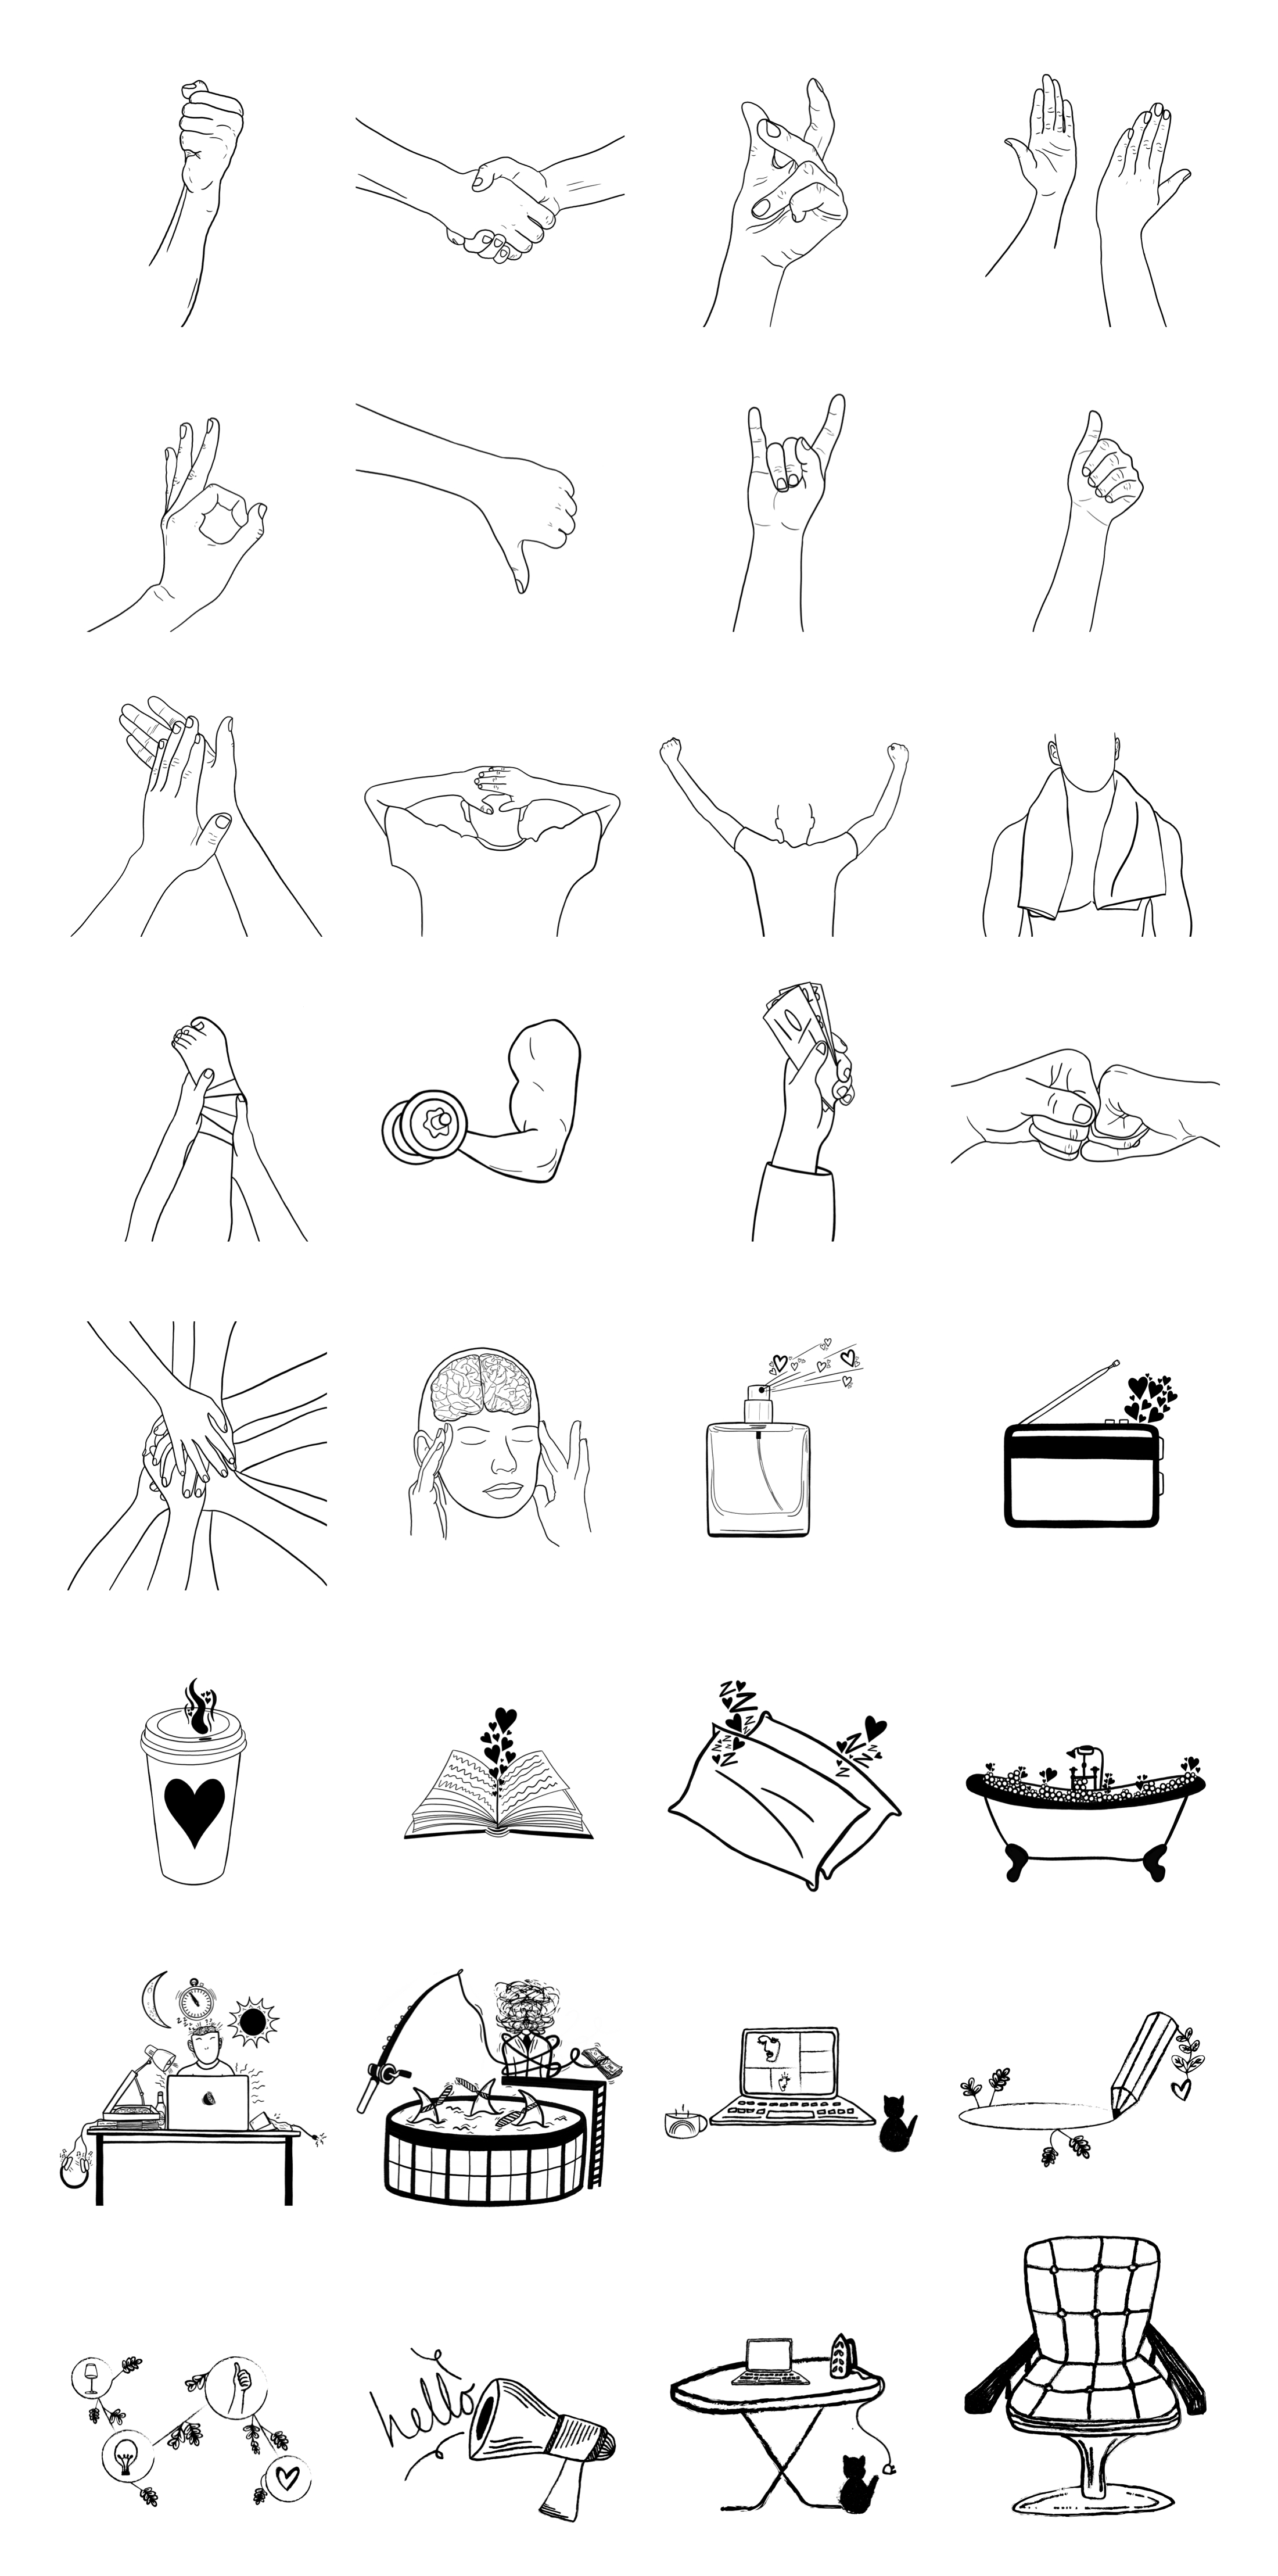 Skribbl Free Illustrations - Illustrations for everyone. A growing collection of free, hand-drawn illustrations brought to you by a global community of aspiring creatives.